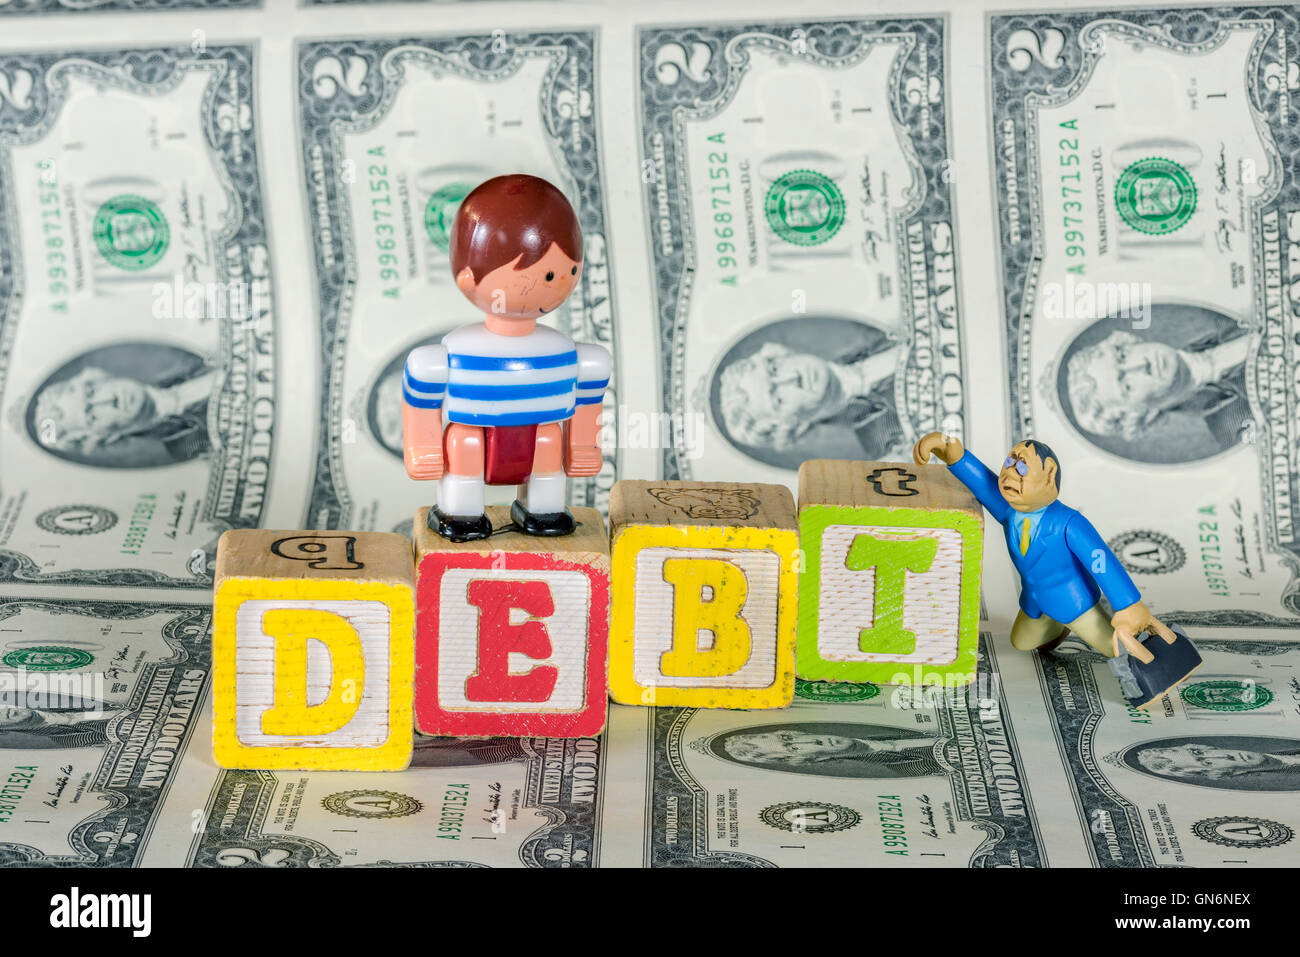 Children afordability with debt and money - Stock Image